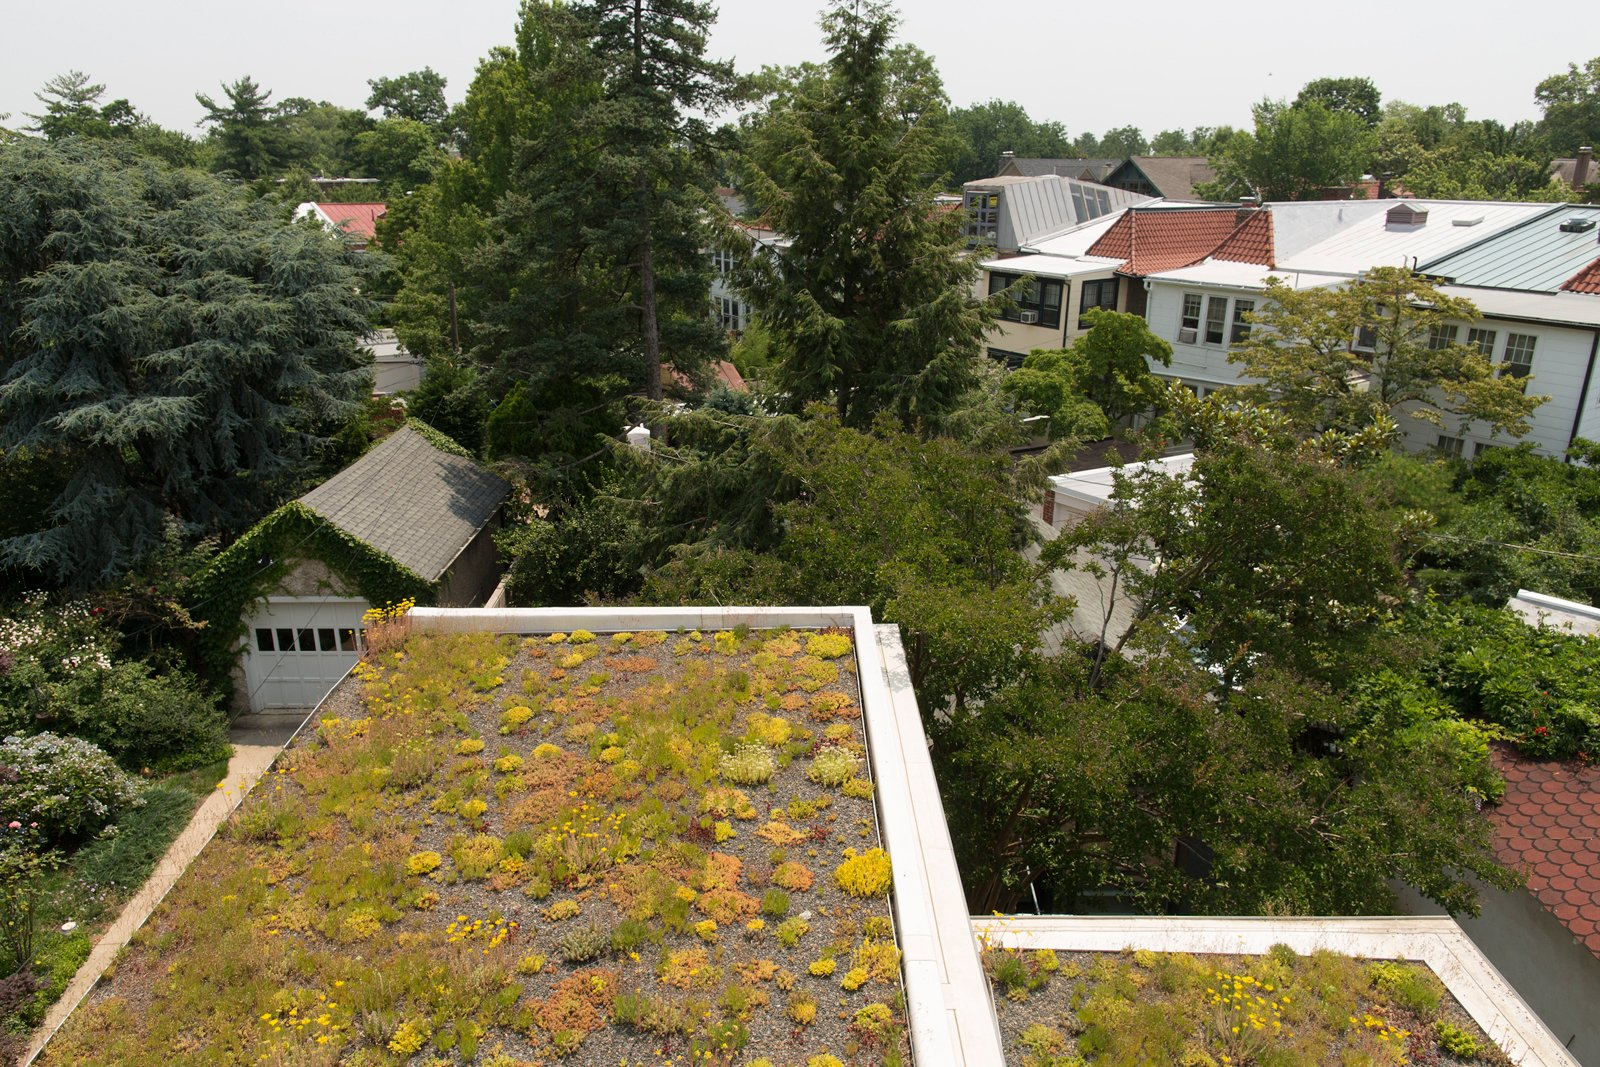 For the green roof, the family received a subsidy administered by DC Greenworks and funded by the DC Department of the Environment. The sedum plantings come from nearby Emory Knoll Farms, the only nursery in North America to focus solely on propagating plants intended for green-roof systems.  The sedum plantings come from nearby Emory Knoll Farms, the only nursery in North America to focus solely on propagating plants intended for green-roof systems. Tagged: Exterior, House, and Green Roof Material.  Photo 9 of 12 in These 10 Green Roofs Bring Life—and So Much More—to These Modern Structures